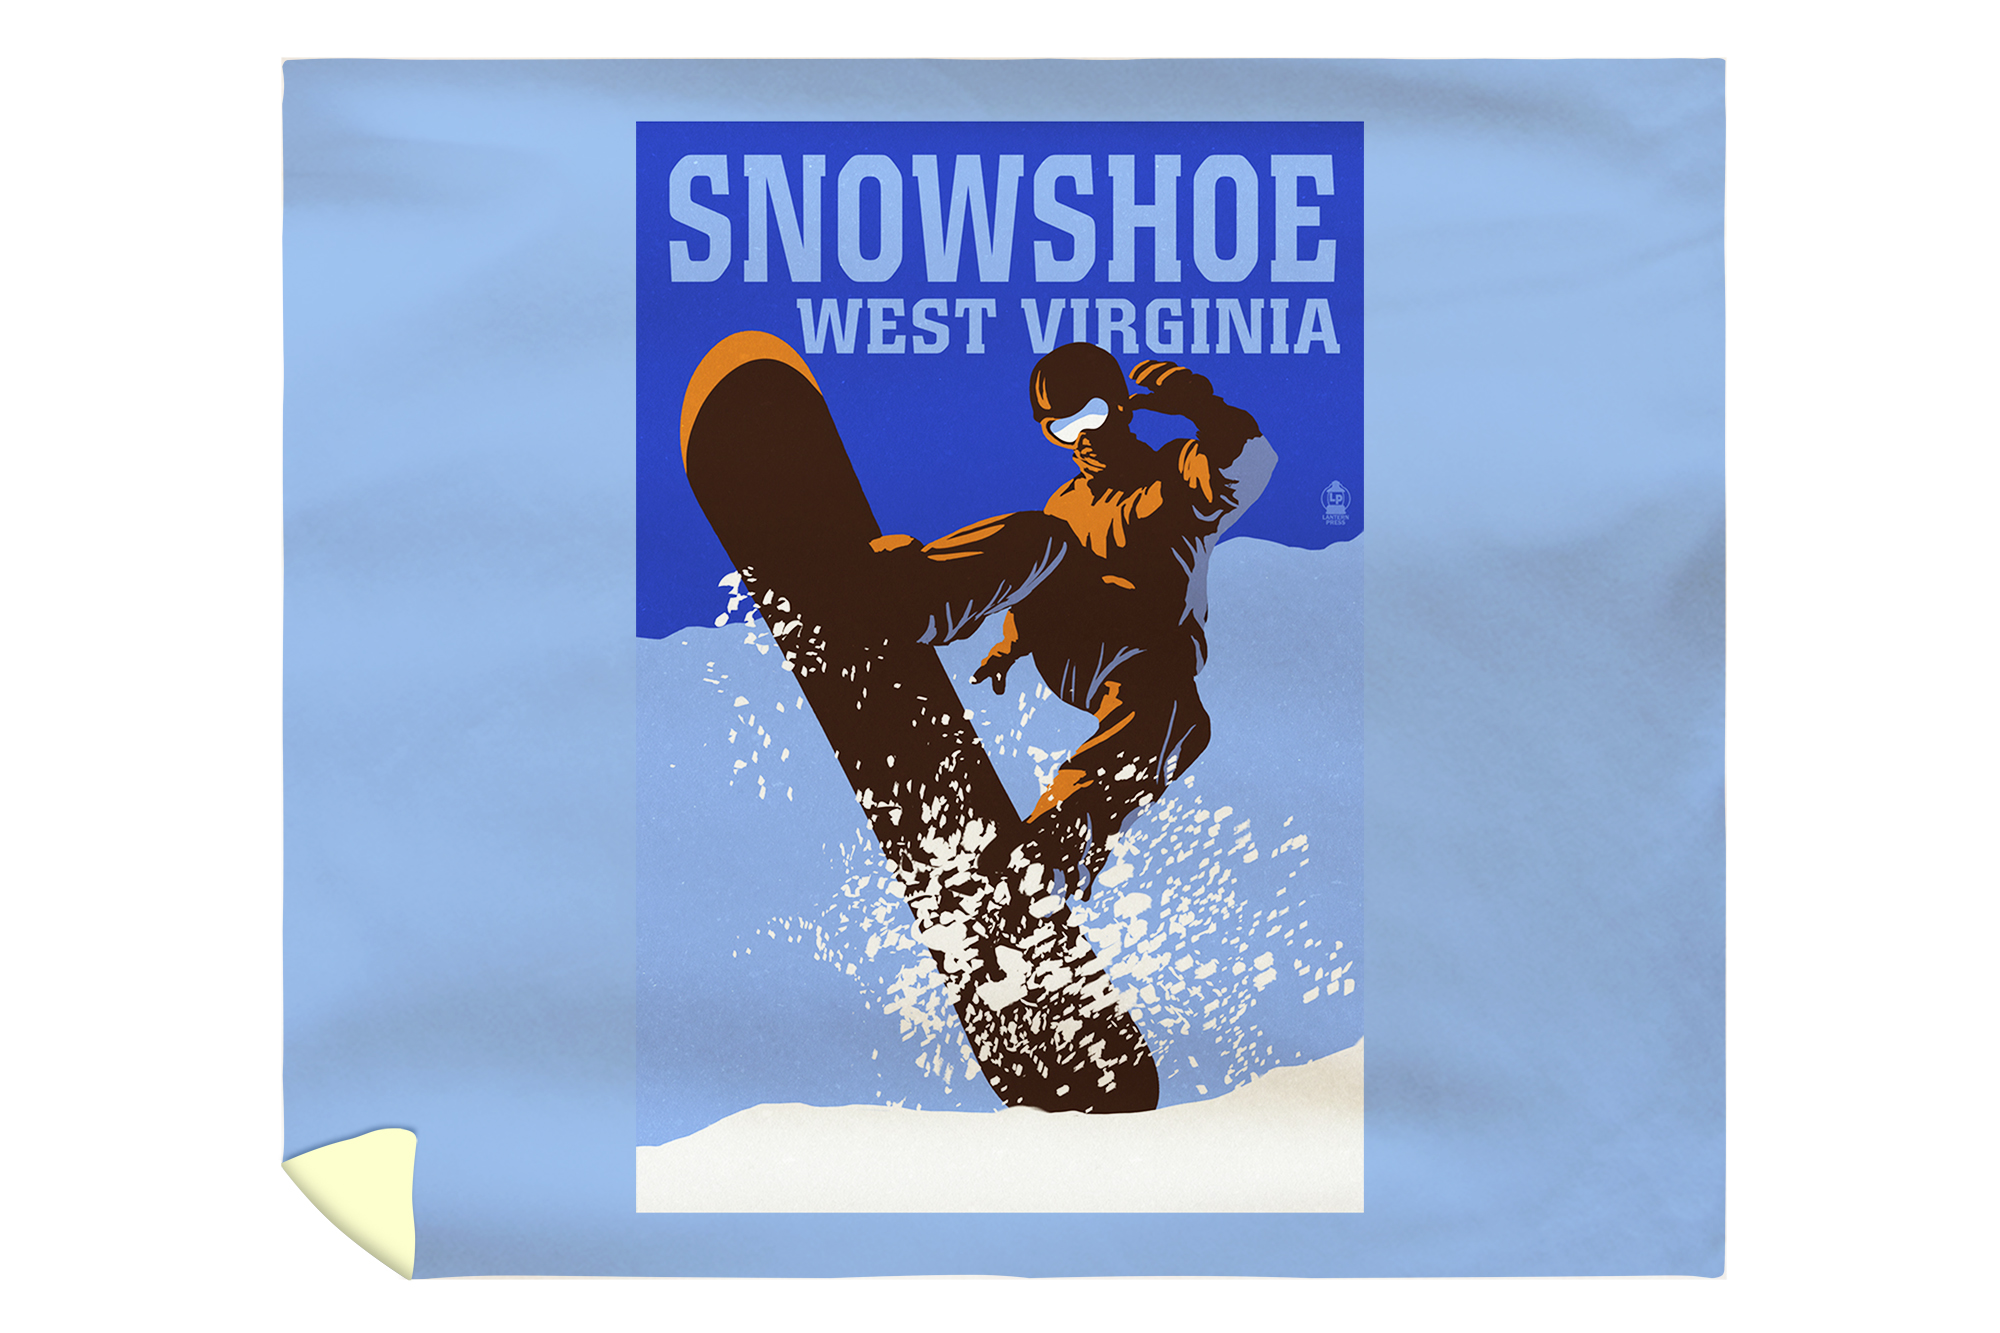 Snowshoe, West Virginia Colorblock Snowboarder Lantern Press Artwork (88x88 Queen Microfiber Duvet Cover) by Lantern Press